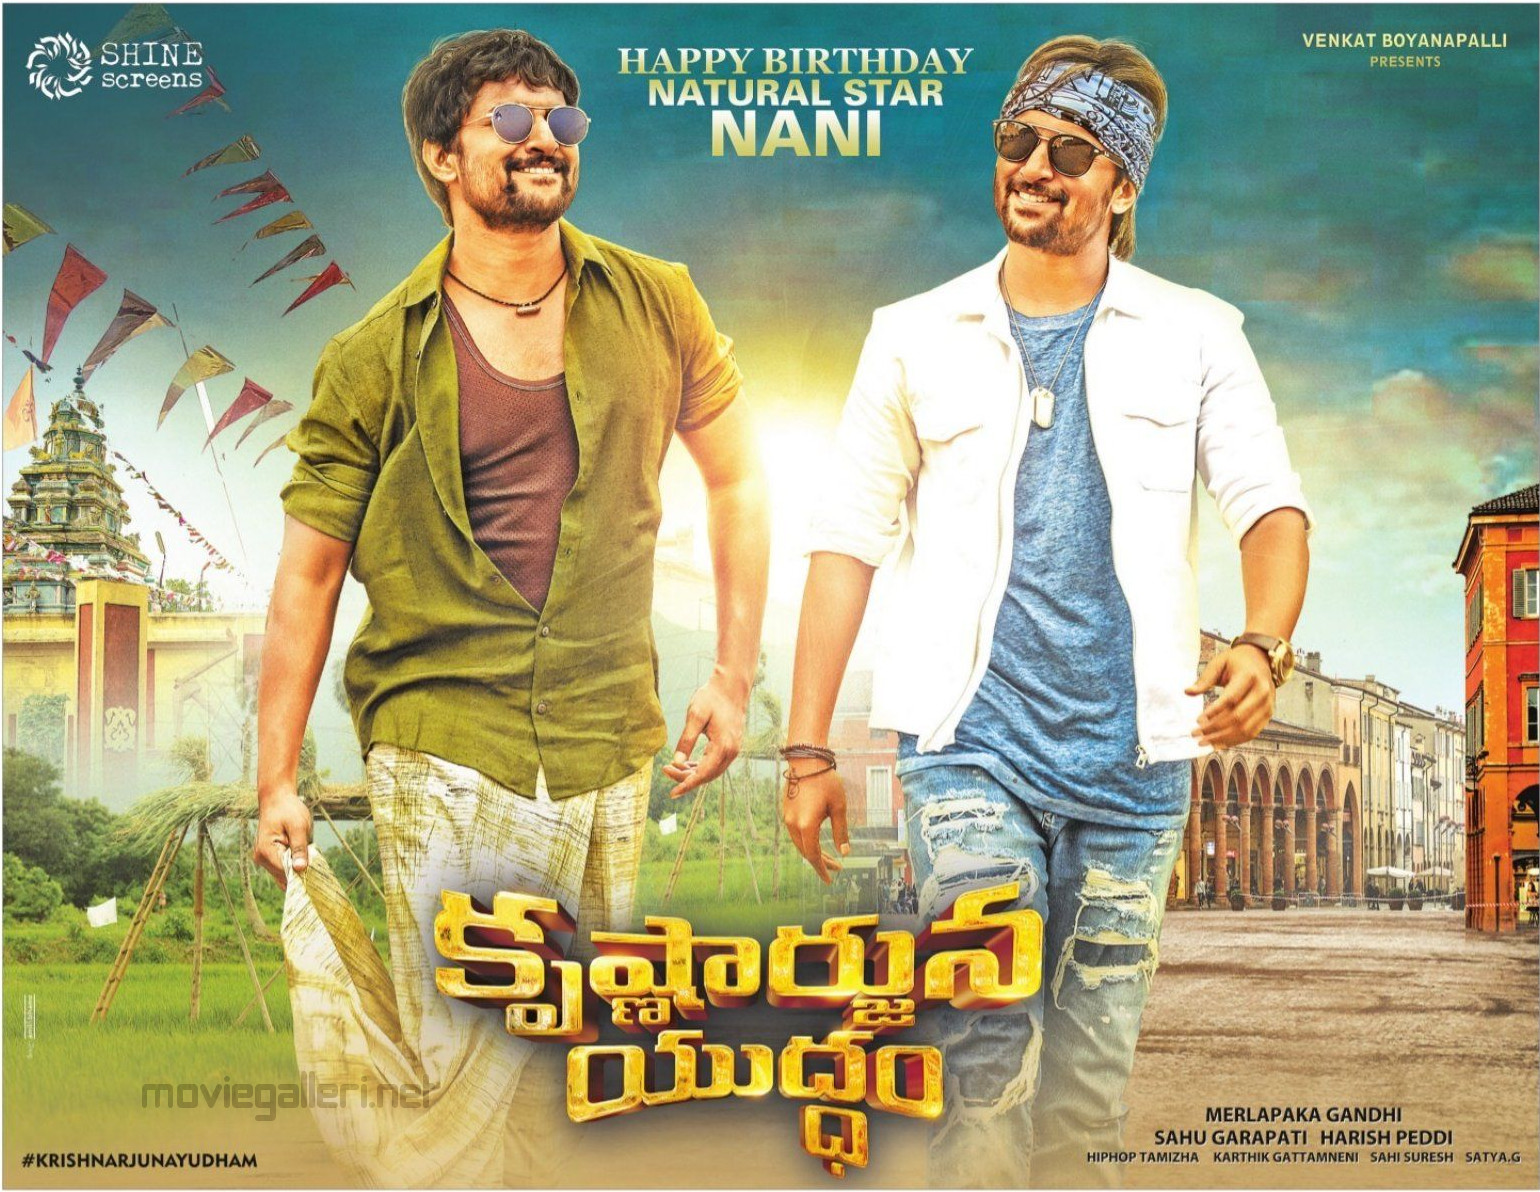 Krishnarjuna Yuddham Actor Nani Birthday Poster HD